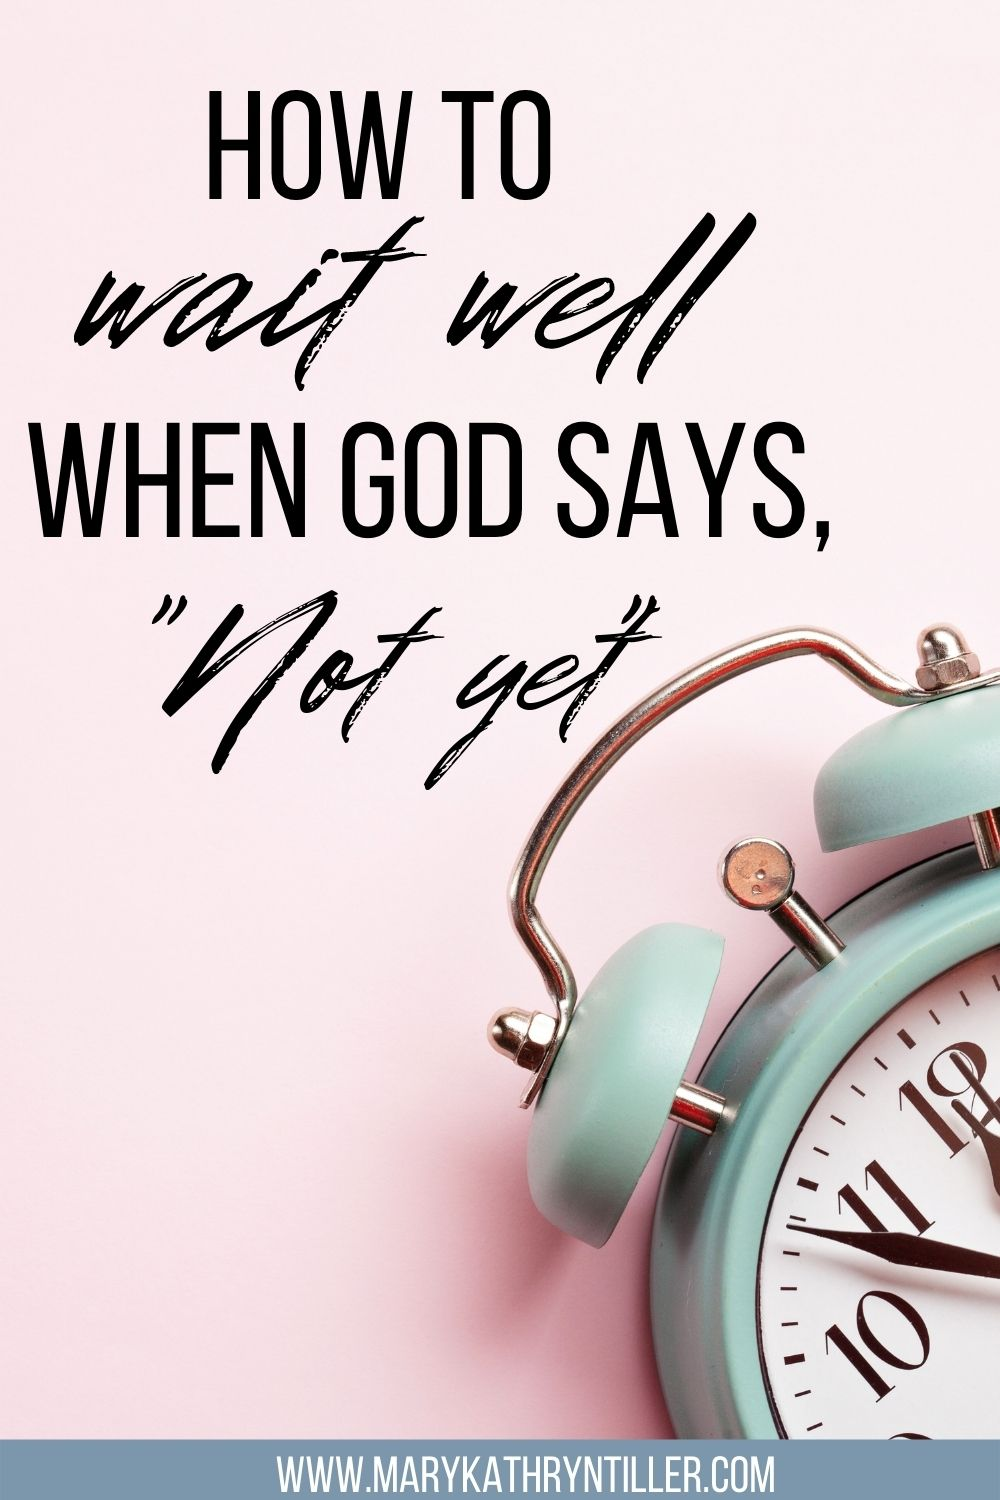 How to wait well when God says not yet